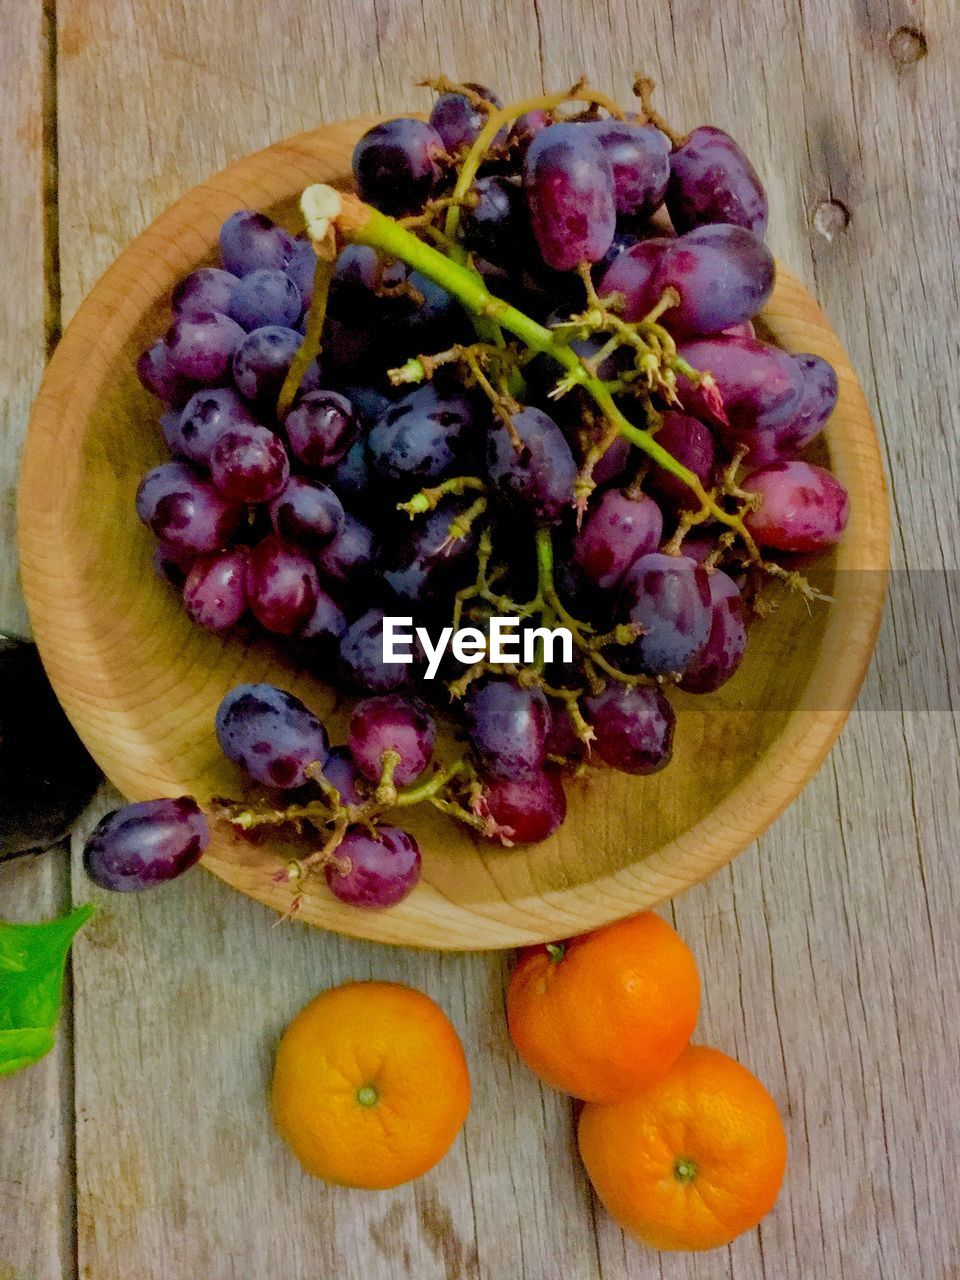 food, food and drink, healthy eating, table, freshness, wood - material, fruit, wellbeing, directly above, no people, still life, high angle view, vegetable, close-up, indoors, large group of objects, grape, cutting board, choice, variation, purple